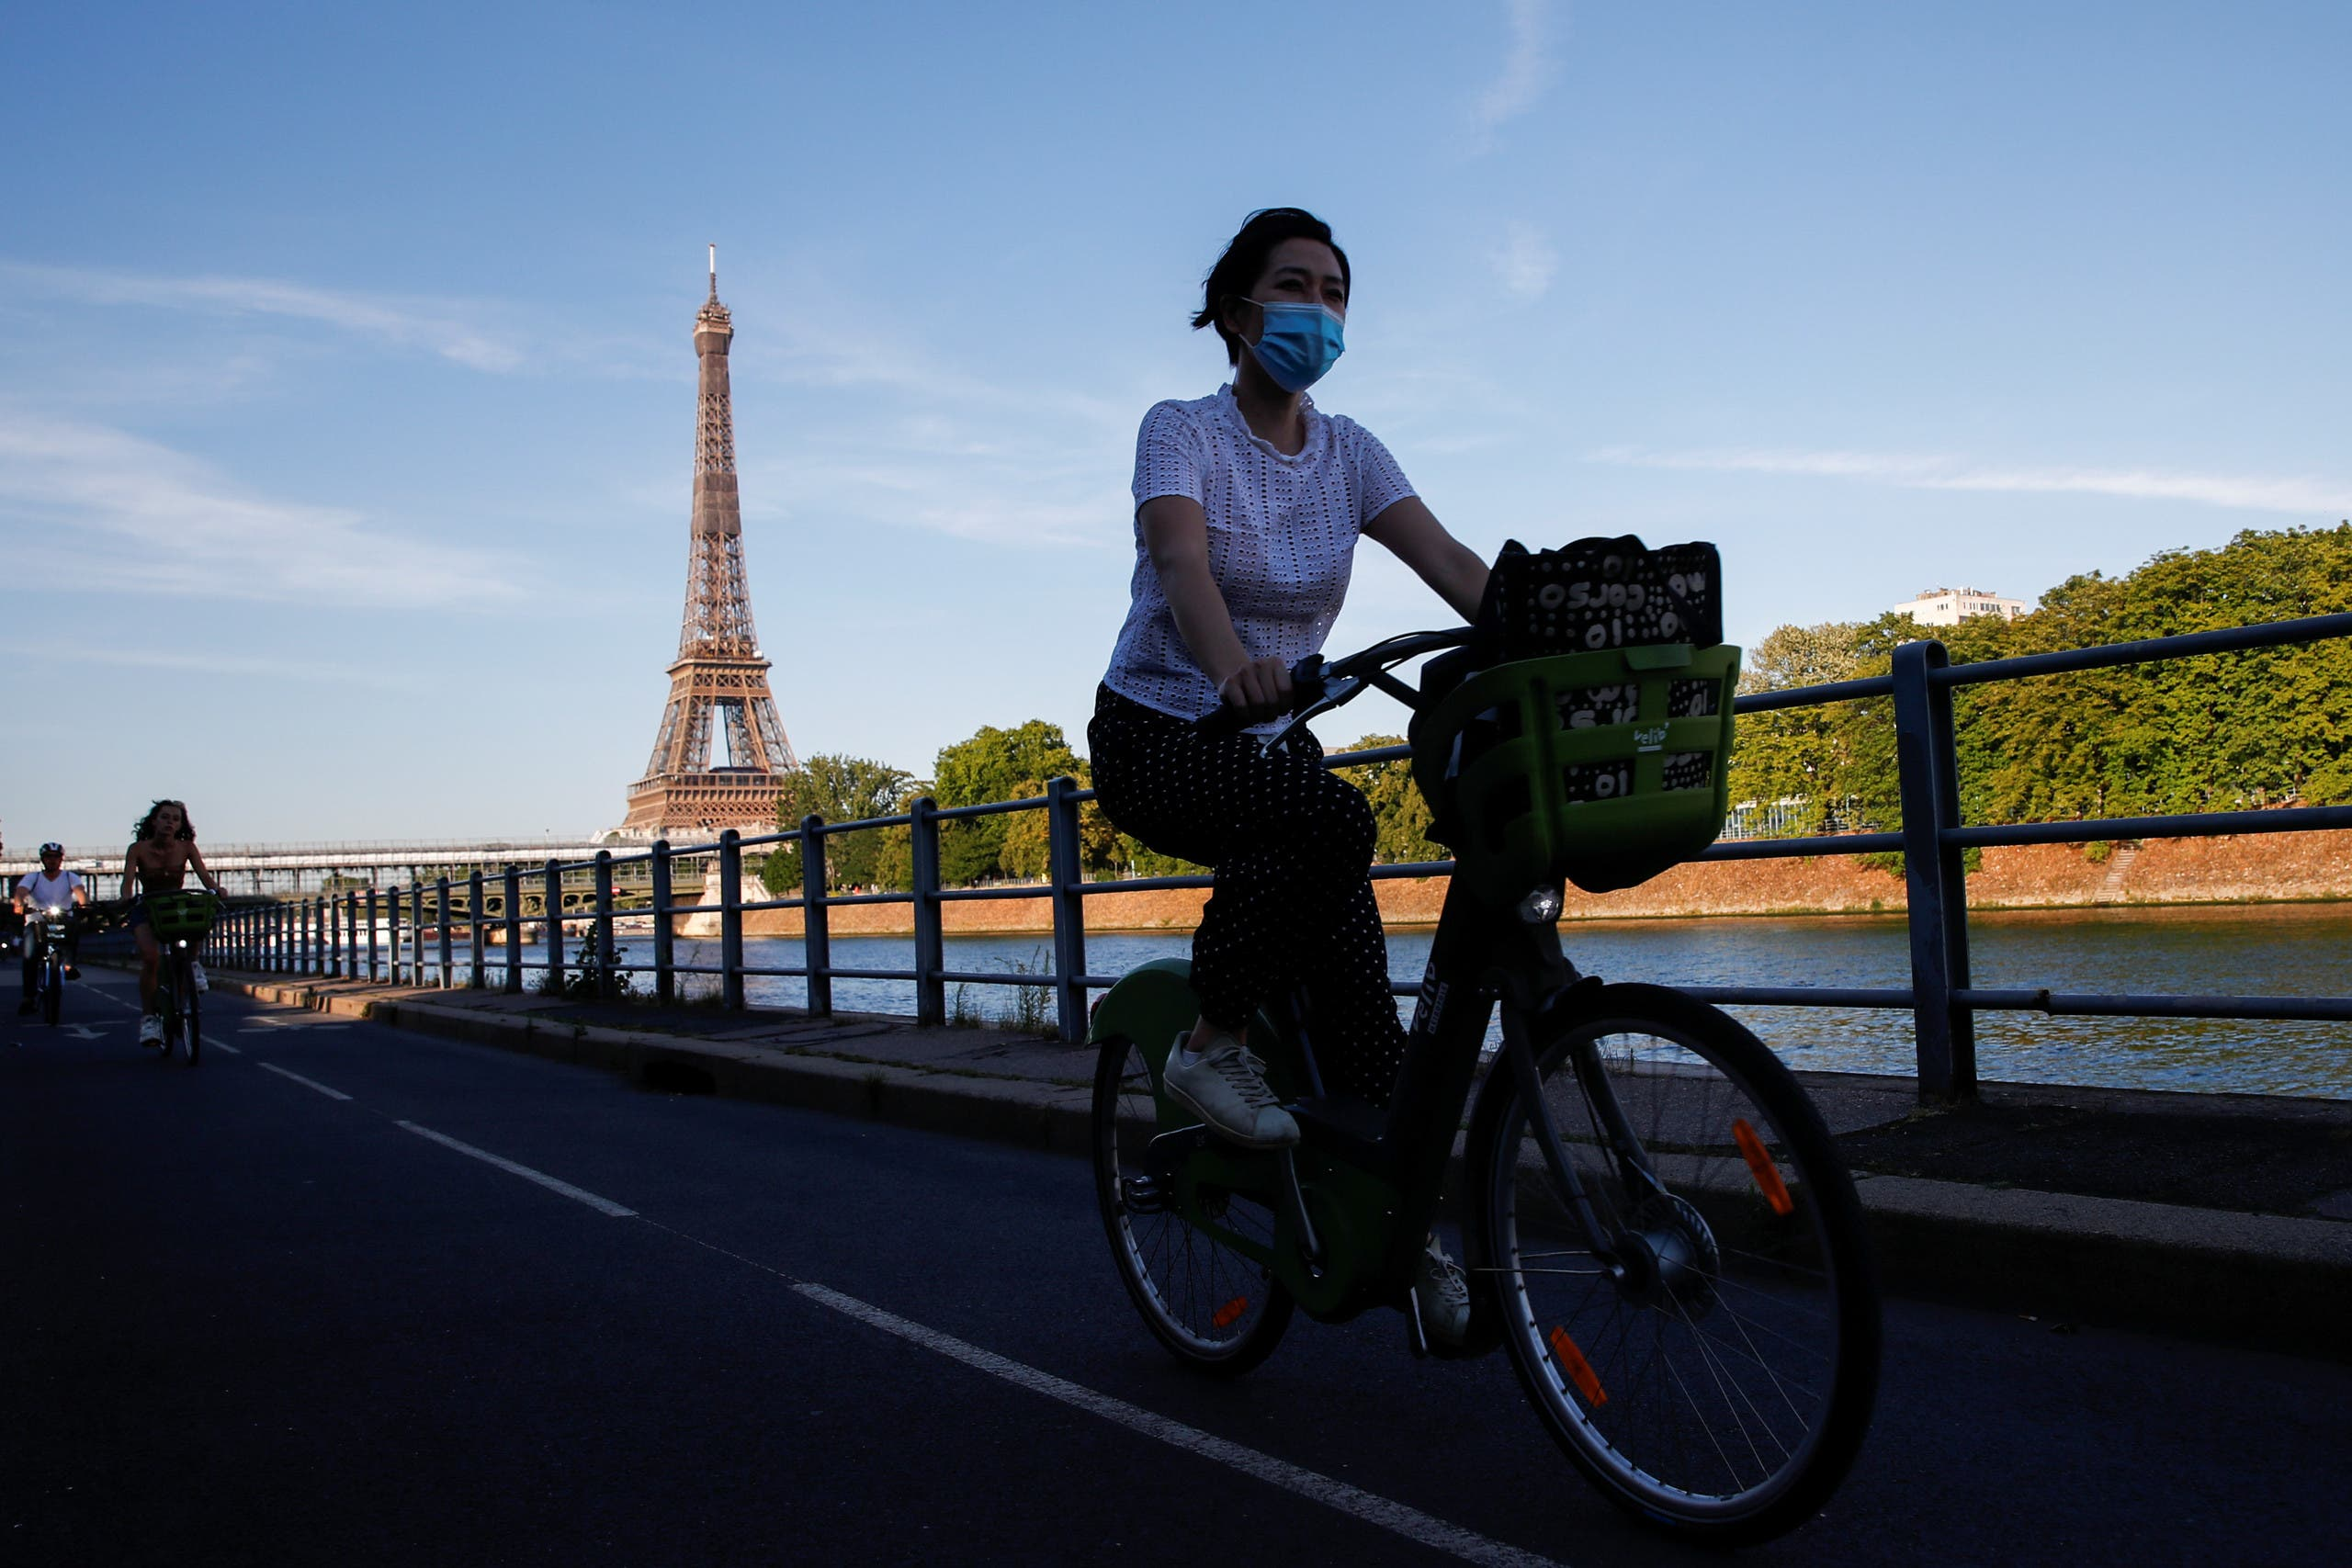 A woman wearing a protective mask rides a bicycle near the Eiffel Tower during a warm and sunny day in Paris as a heatwave hits France, June 24, 2020. (Reuters)